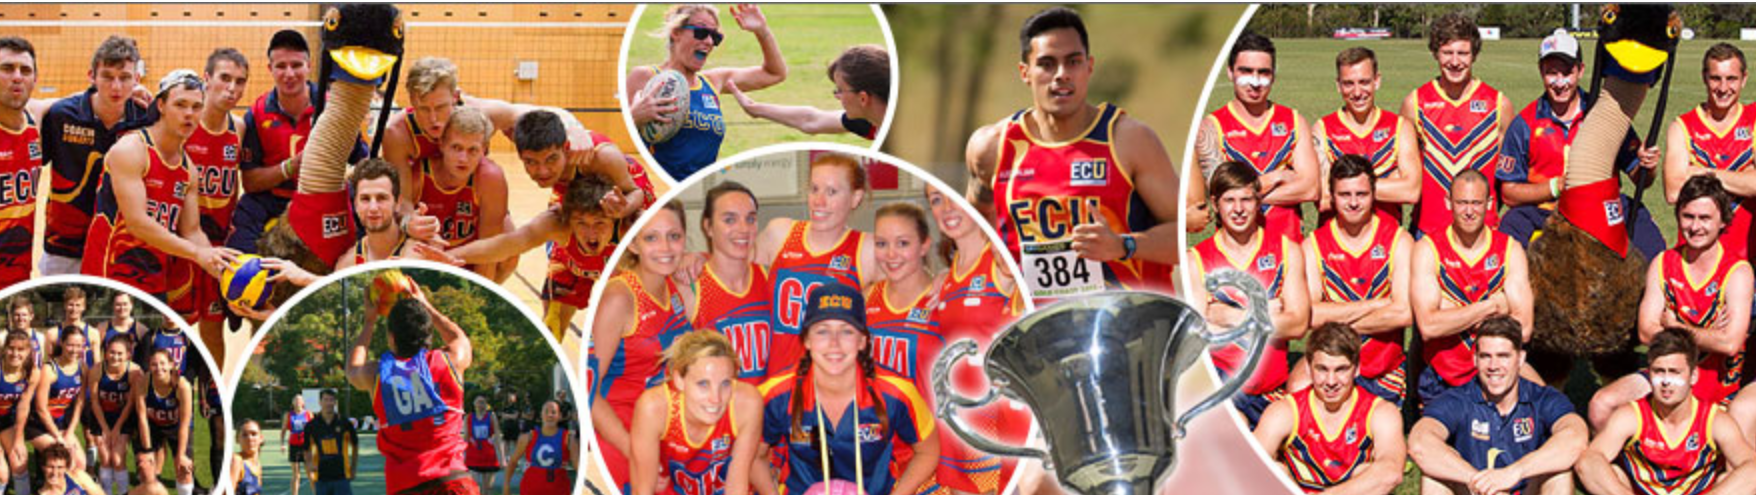 image of various sport and fitness clubs at ECU